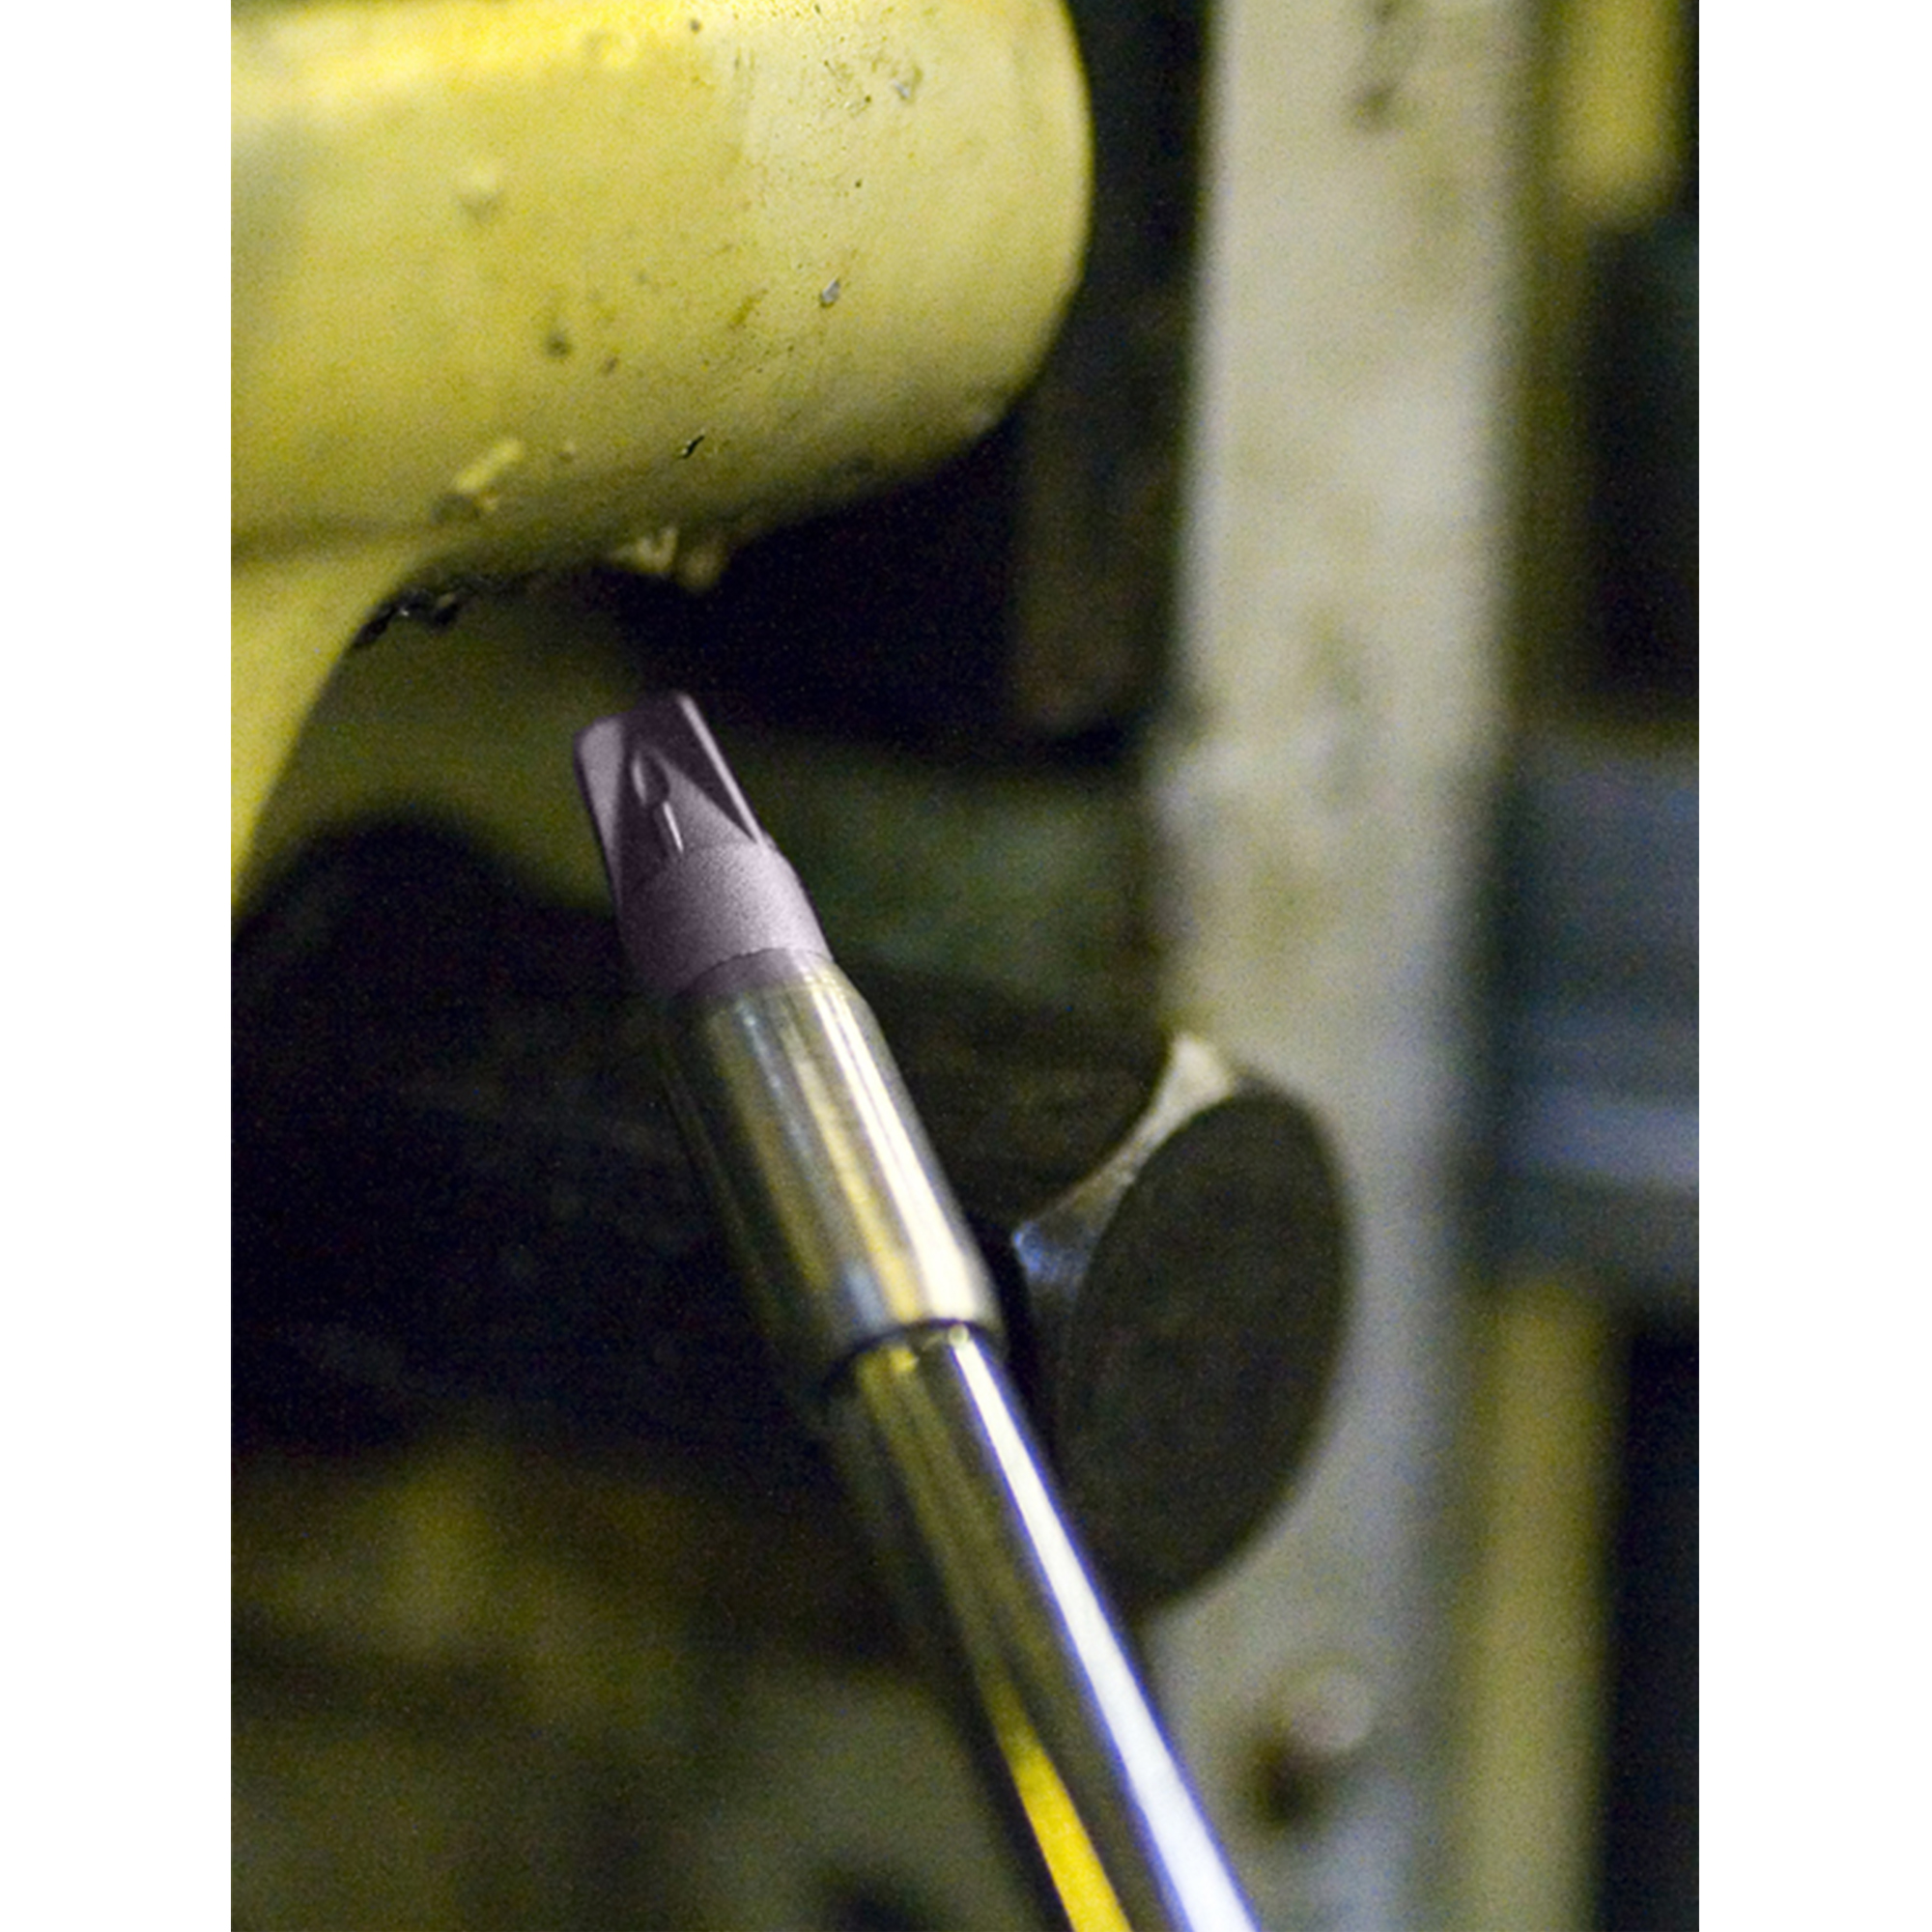 Stainless Steel Nano Super Air Nozzle operating in a tight machine space.